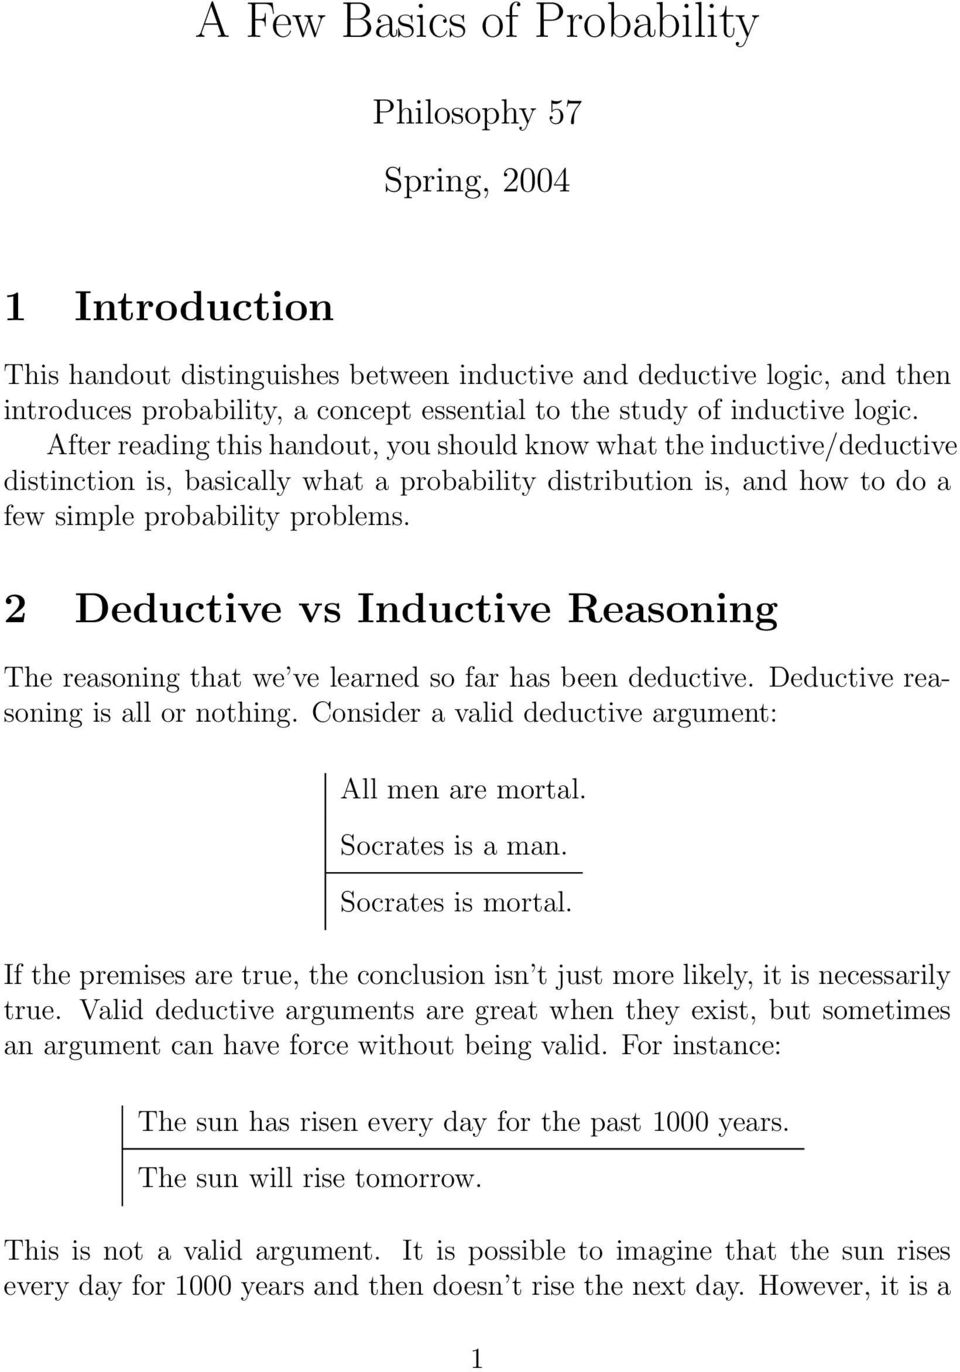 After reading this handout, you should know what the inductive/deductive distinction is, basically what a probability distribution is, and how to do a few simple probability problems.